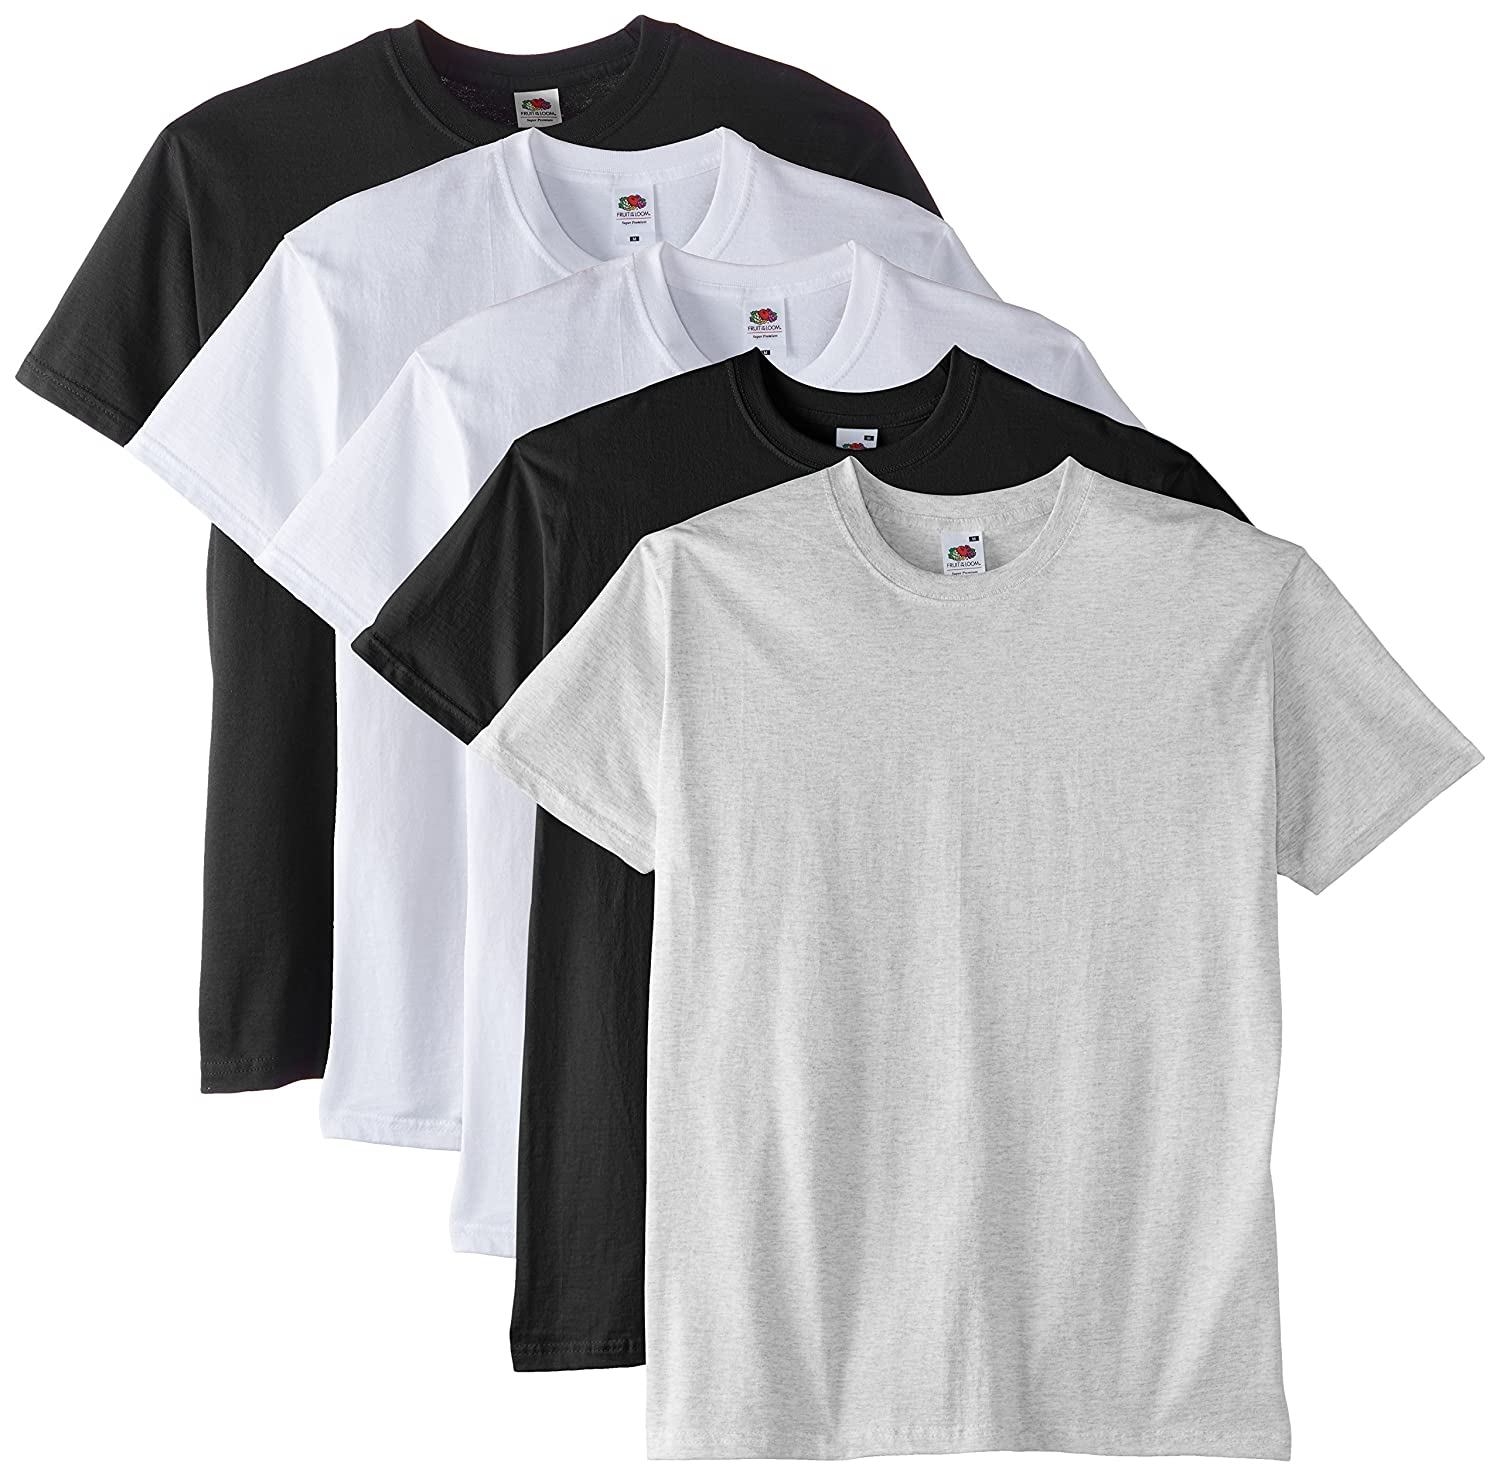 Fruit of the Loom Men's Super Premium Short Sleeve T-Shirt Pack of 5 61-044-0